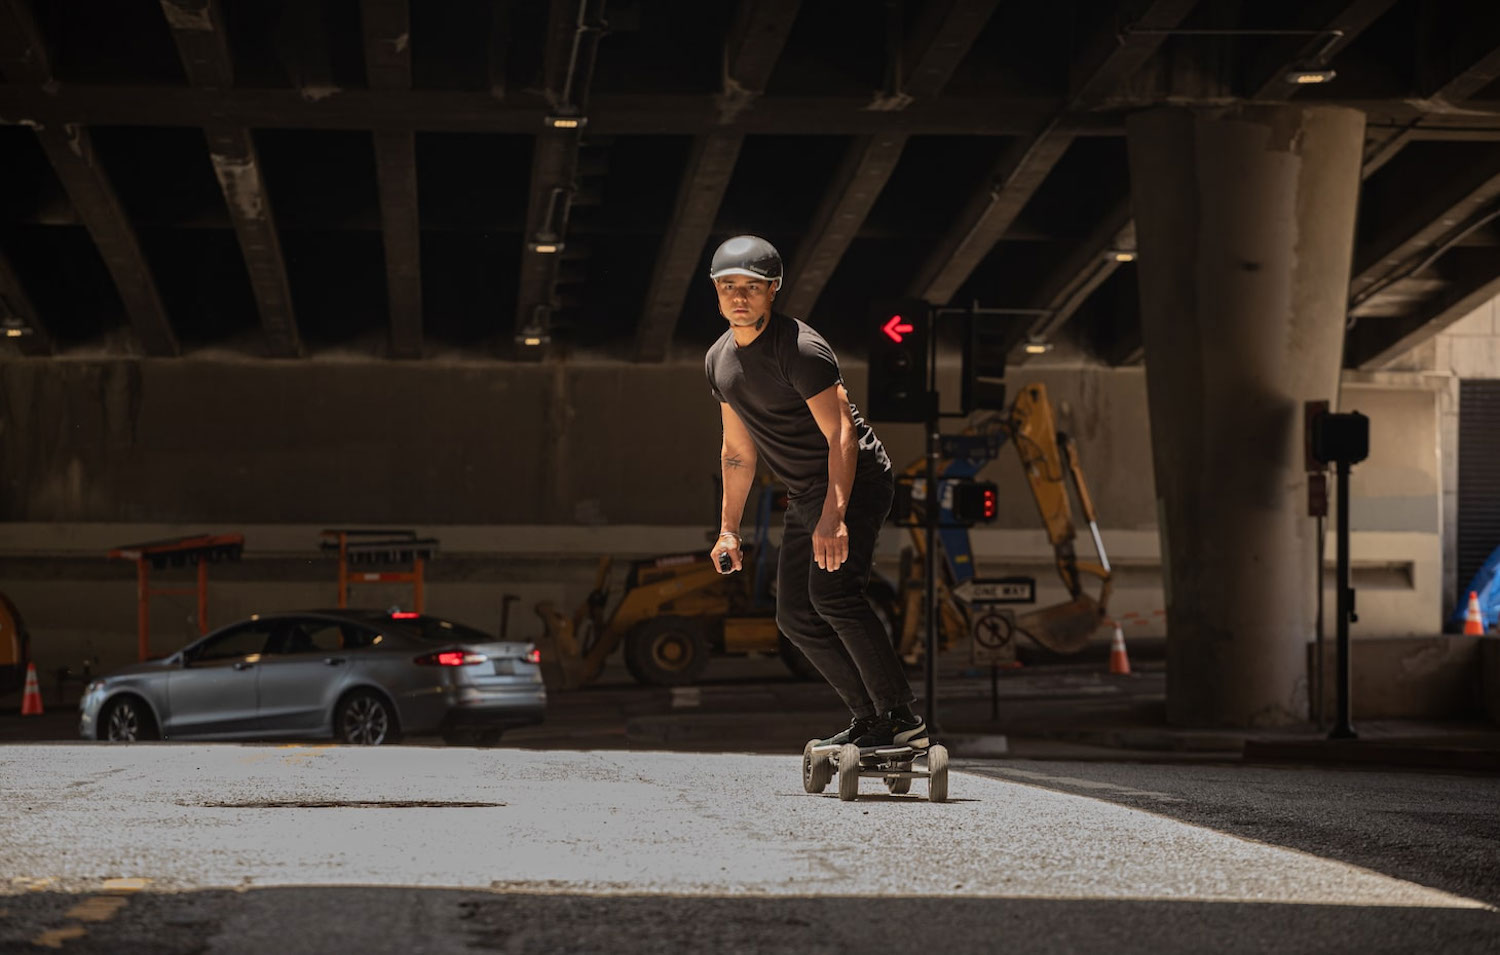 person riding an electric skateboard and wearing a Thousand helmet